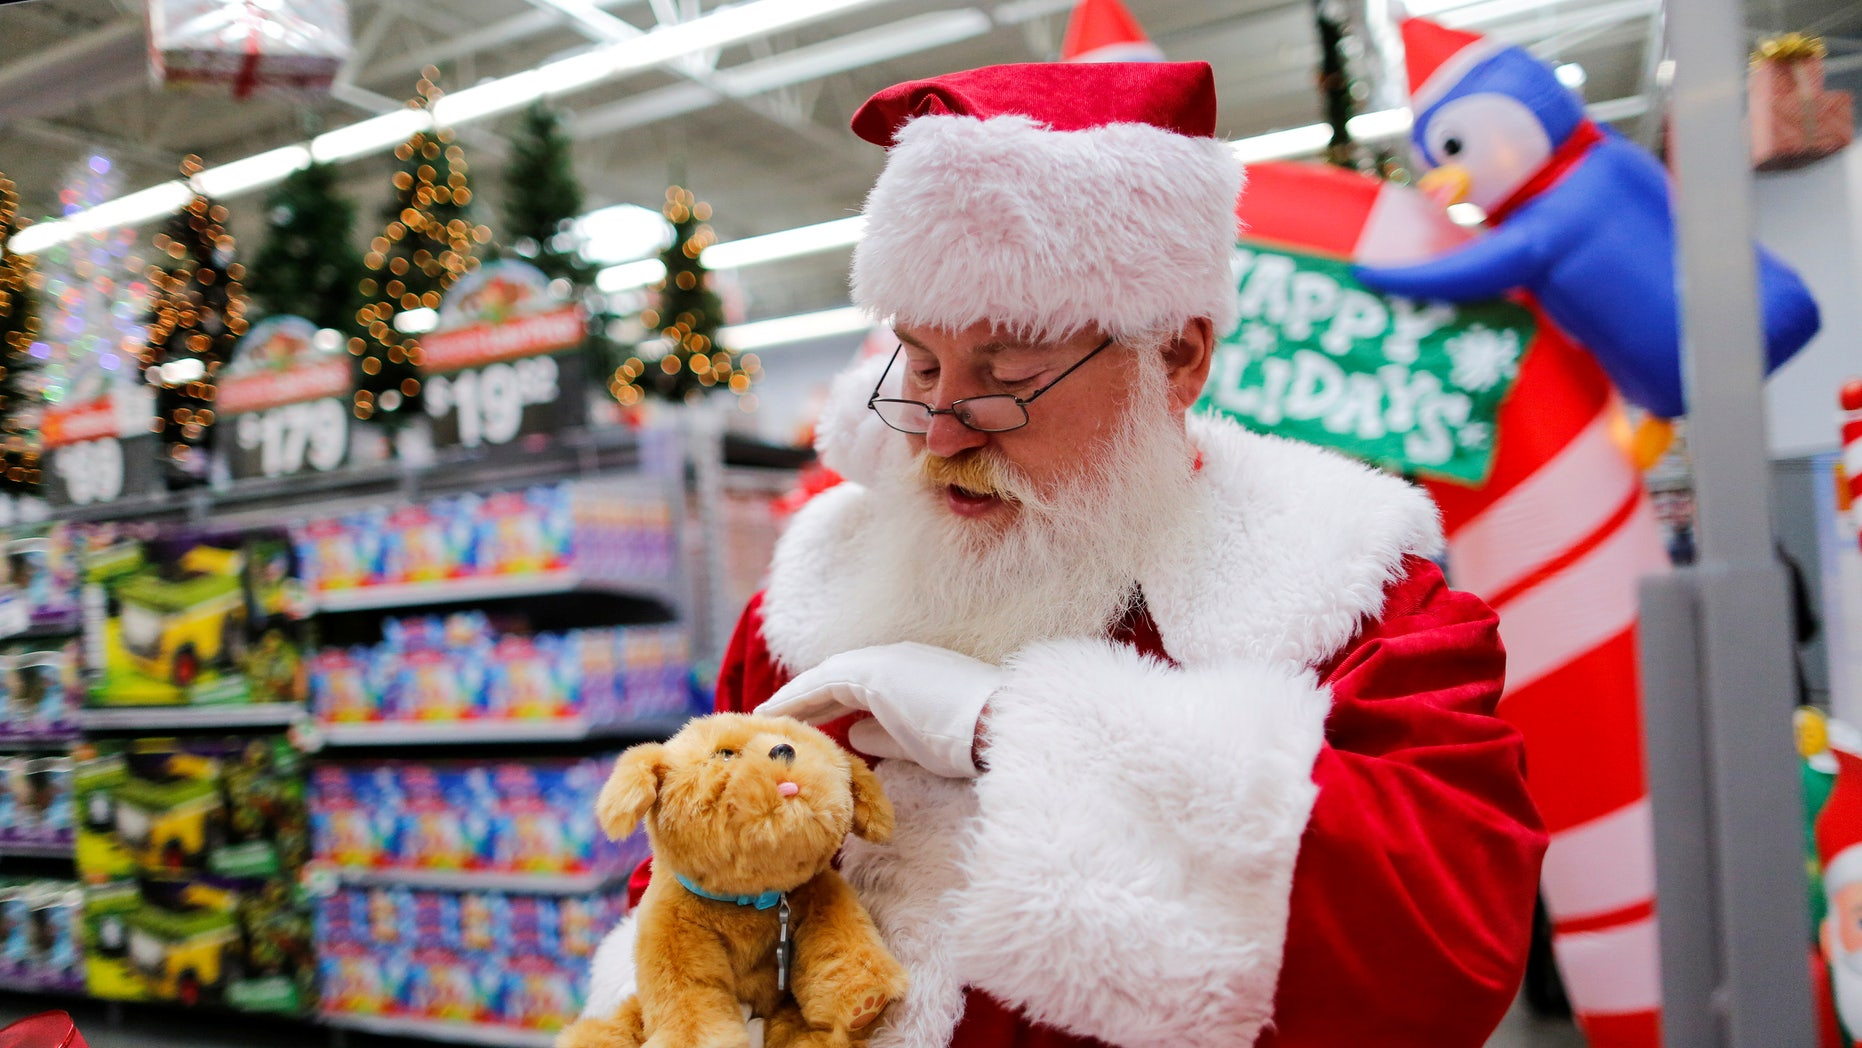 A man dressed as Santa Claus pets a toy as products are display for Christmas season at a Walmart store in Teterboro, New Jersey, U.S., October 26, 2016.